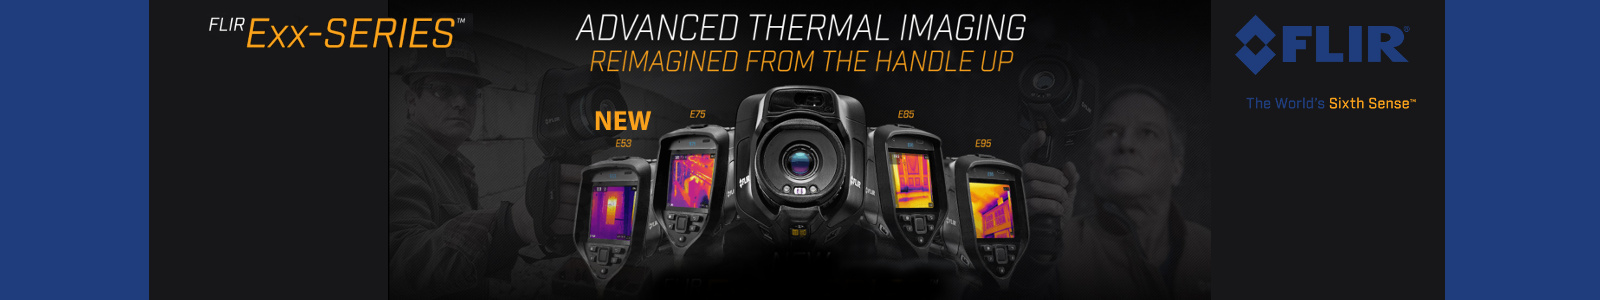 Launch photo of Flir Exx Thermal Cameras